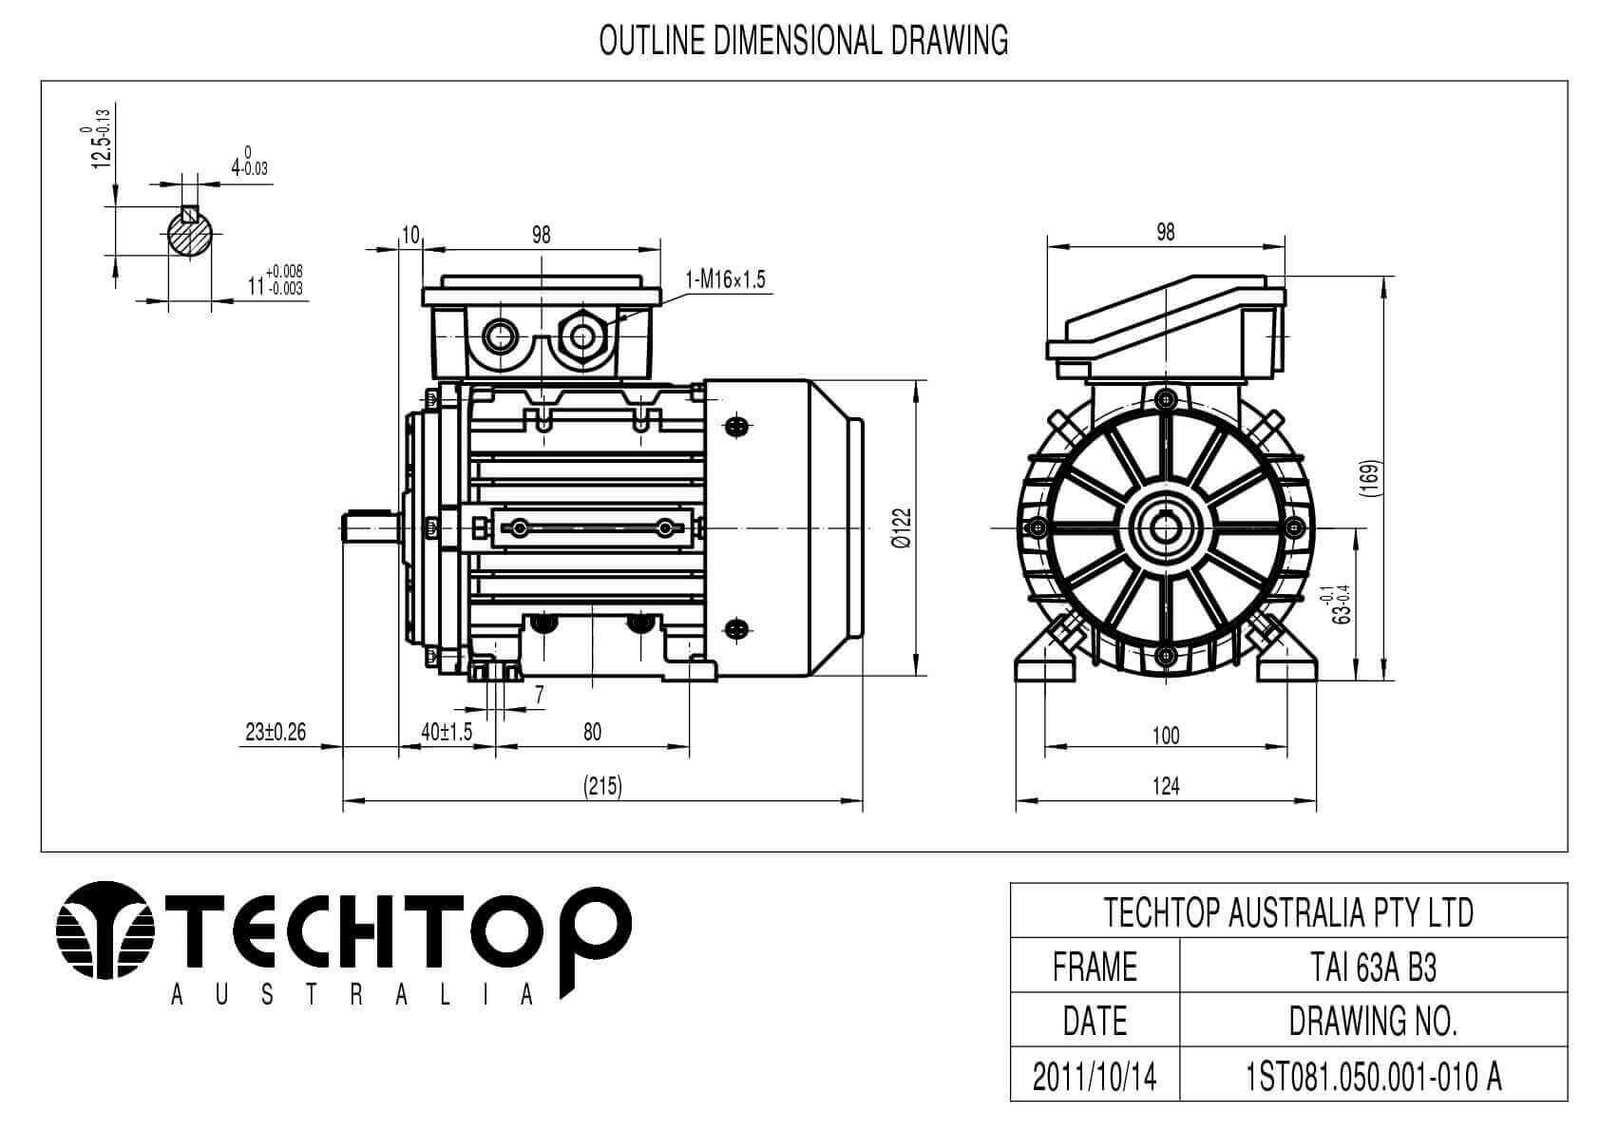 TechTop 0.18 kW Motor 415V 3 Phase 4 Pole, 1275 RPM, Foot